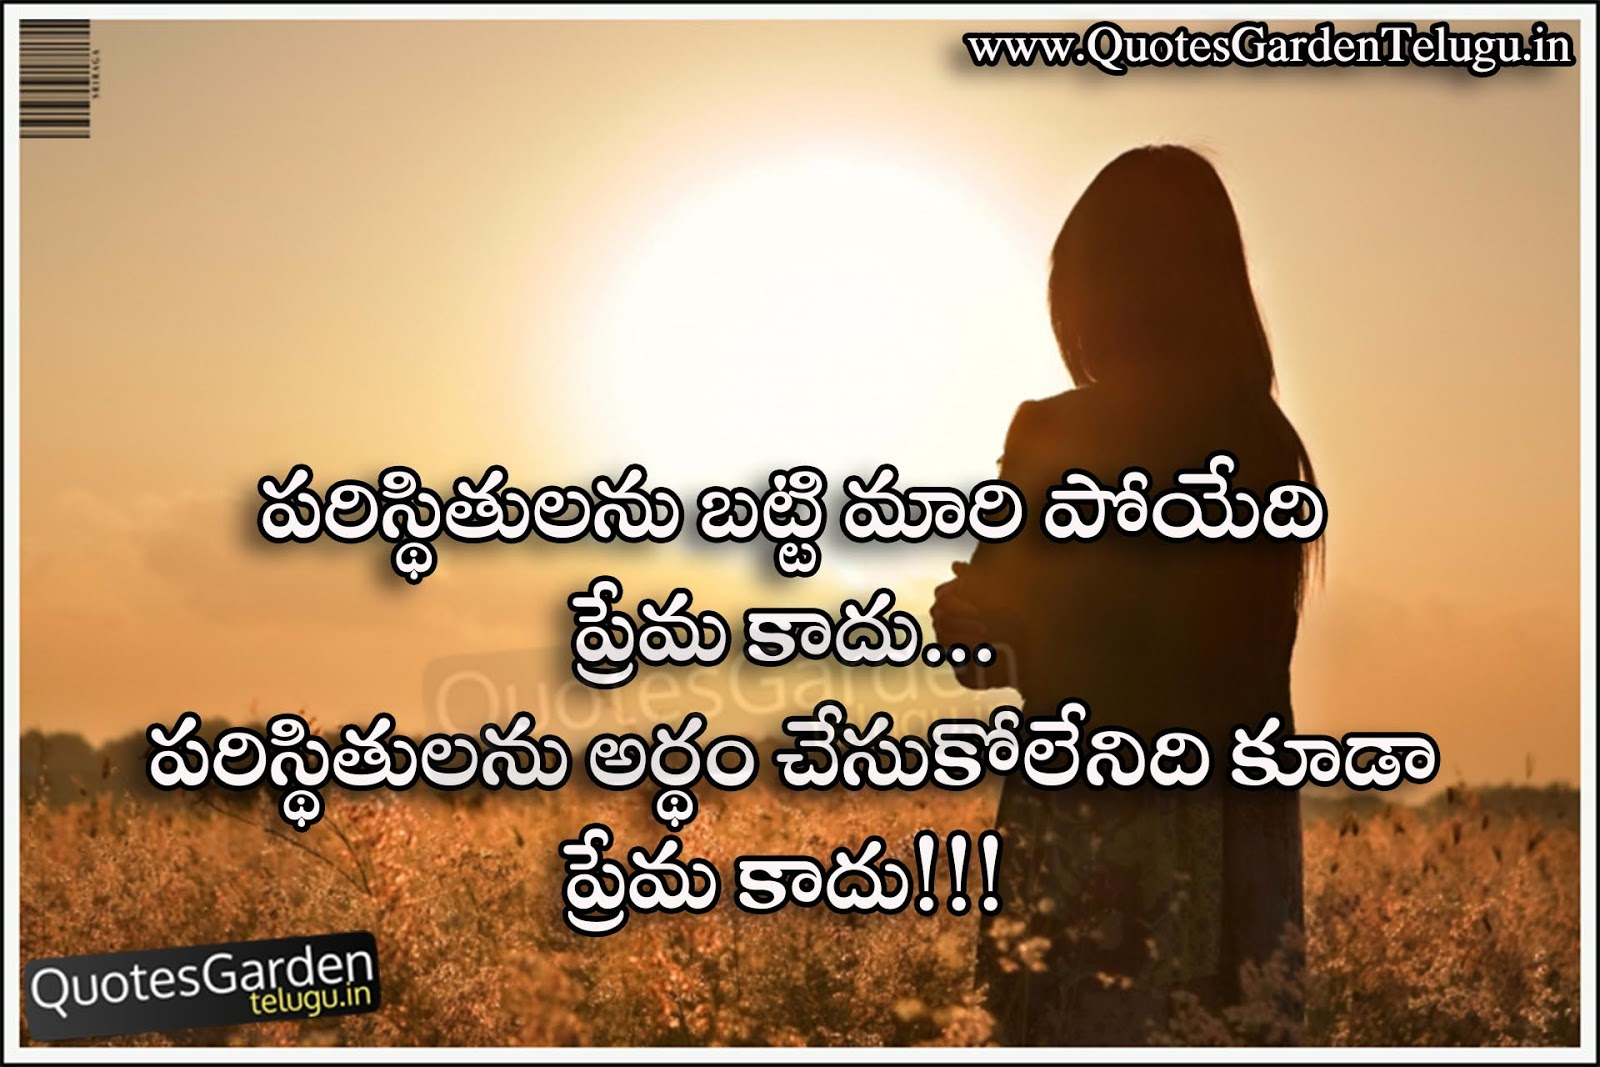 Garden Love Quotes Latest Telugu Love Quotes Messages  Quotes Garden Telugu  Telugu